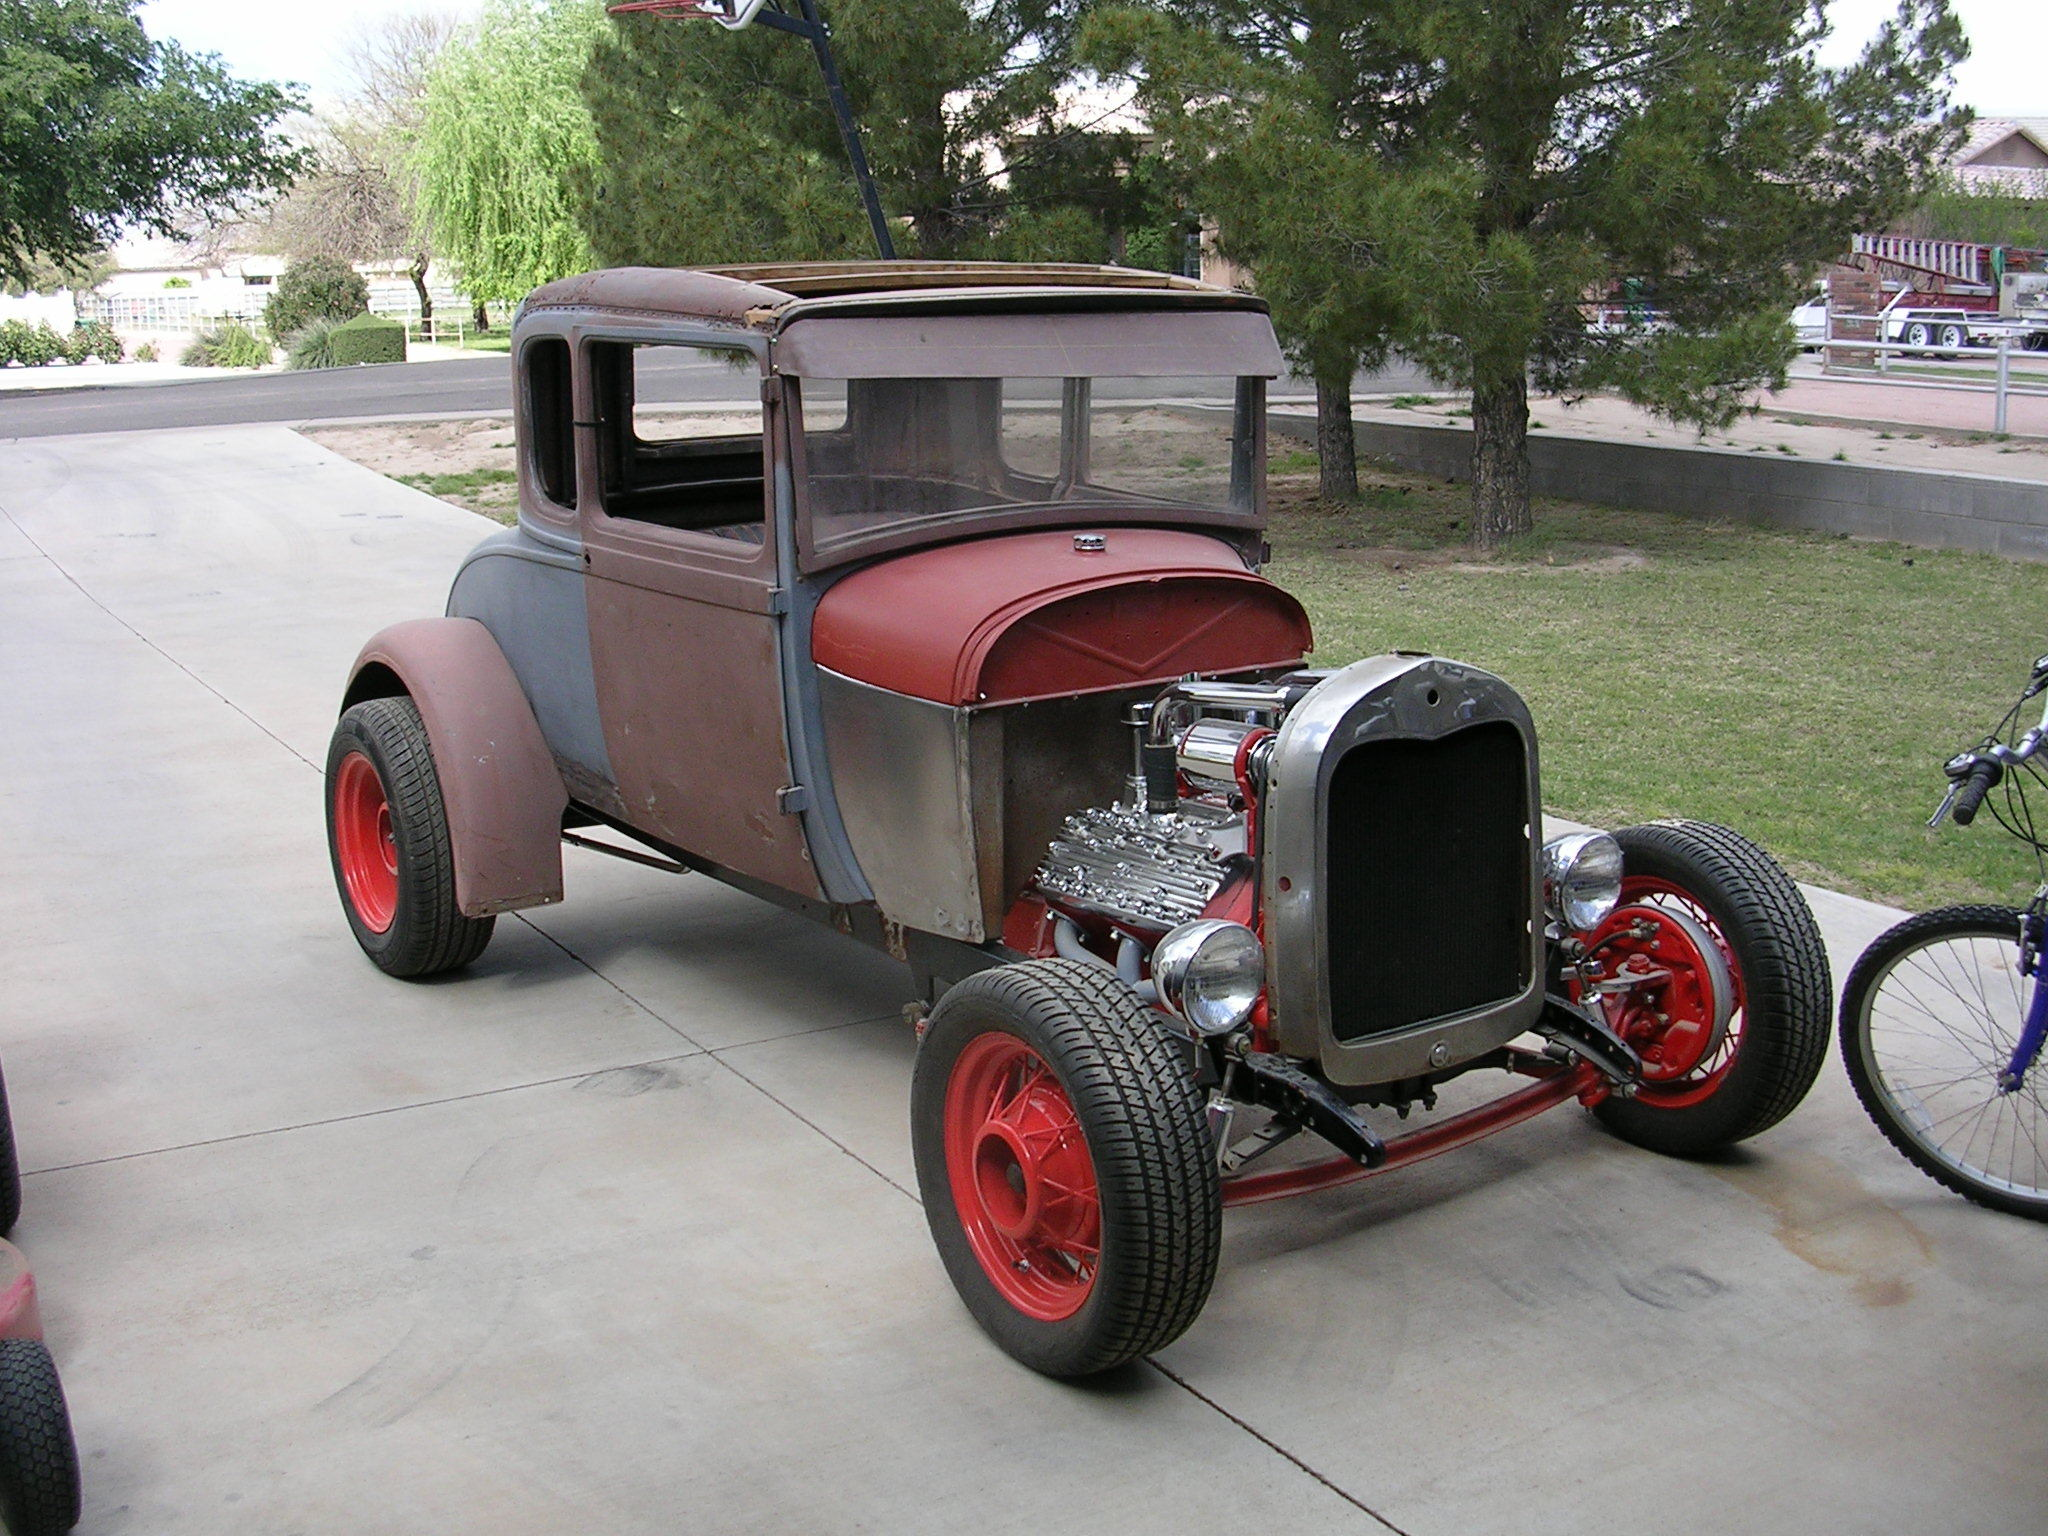 FentonV8's 1929 Ford Model A